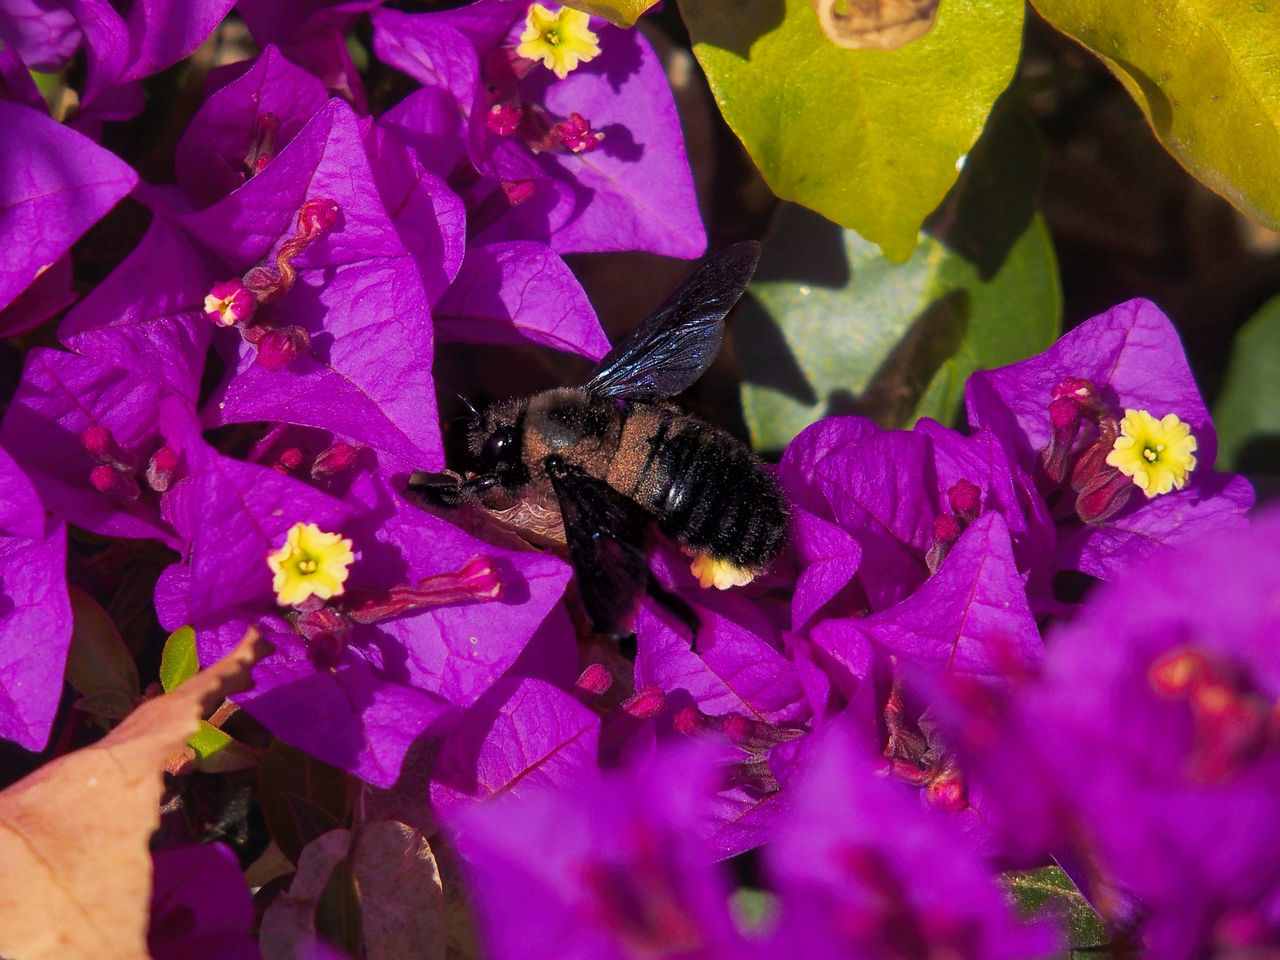 one animal, flower, animal themes, purple, animals in the wild, petal, insect, fragility, nature, high angle view, animal wildlife, no people, day, outdoors, beauty in nature, growth, pollination, flower head, bee, close-up, freshness, mammal